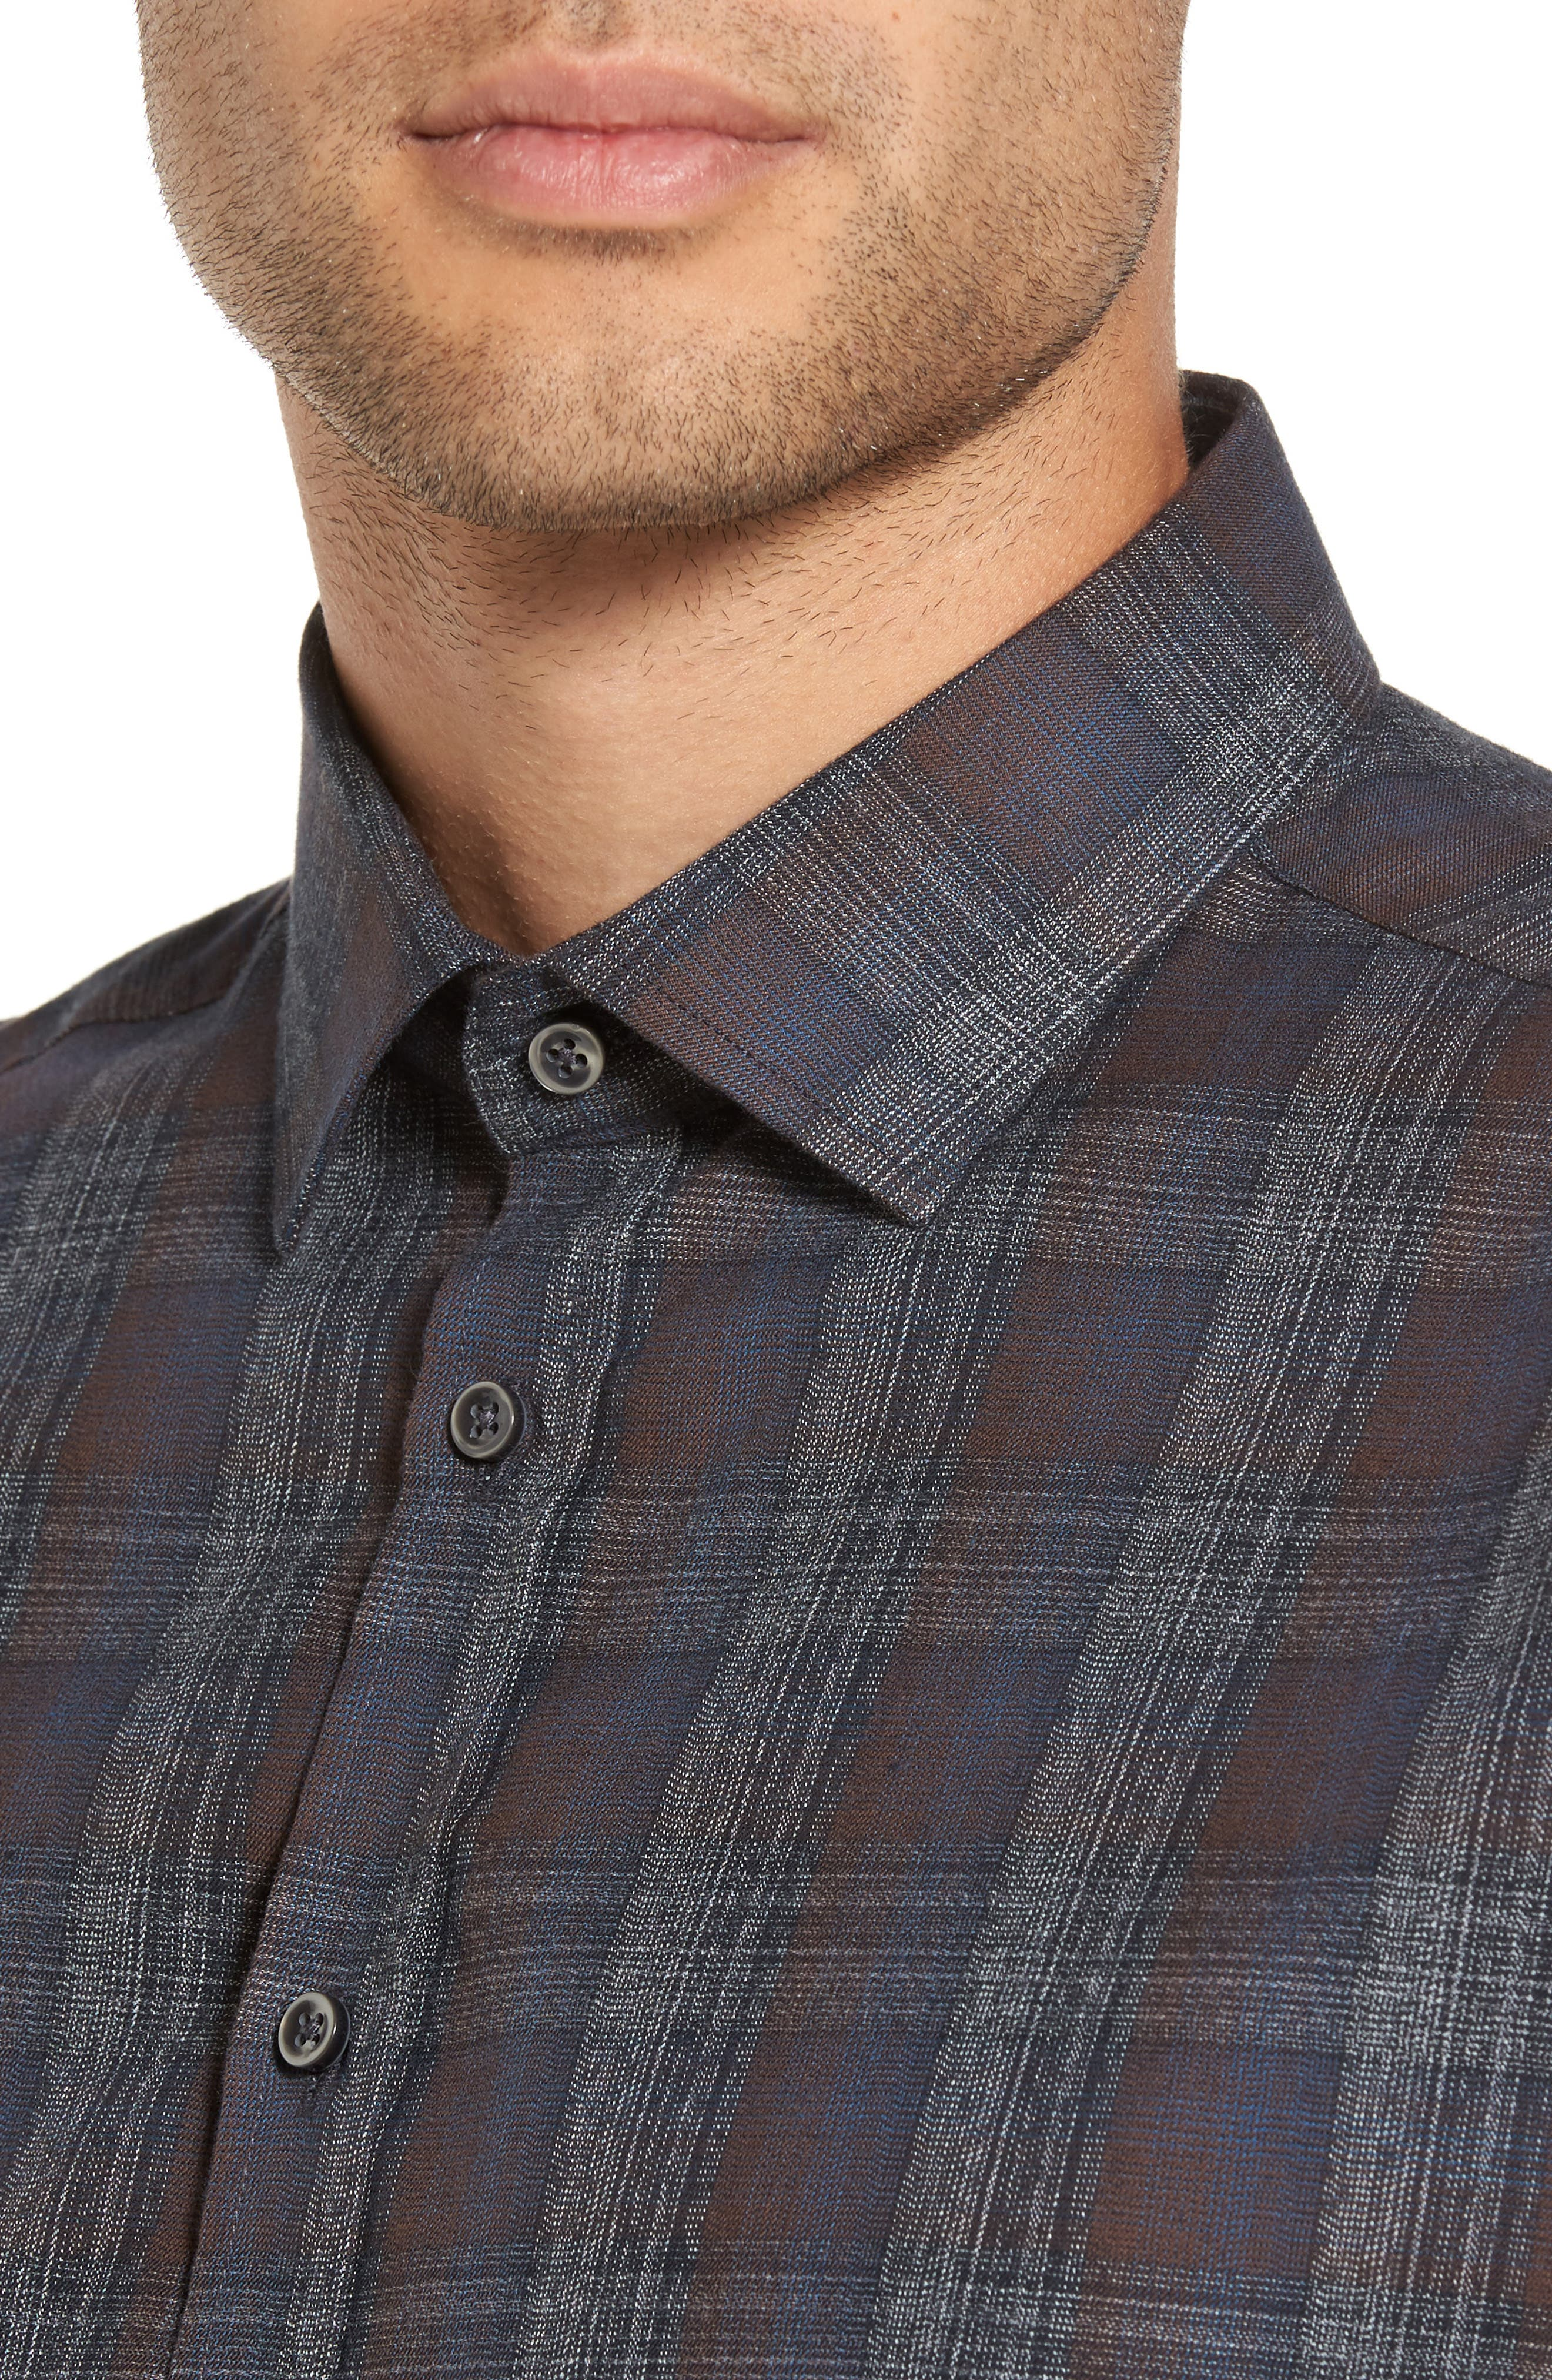 Trim Fit Plaid Sport Shirt,                             Alternate thumbnail 4, color,                             200